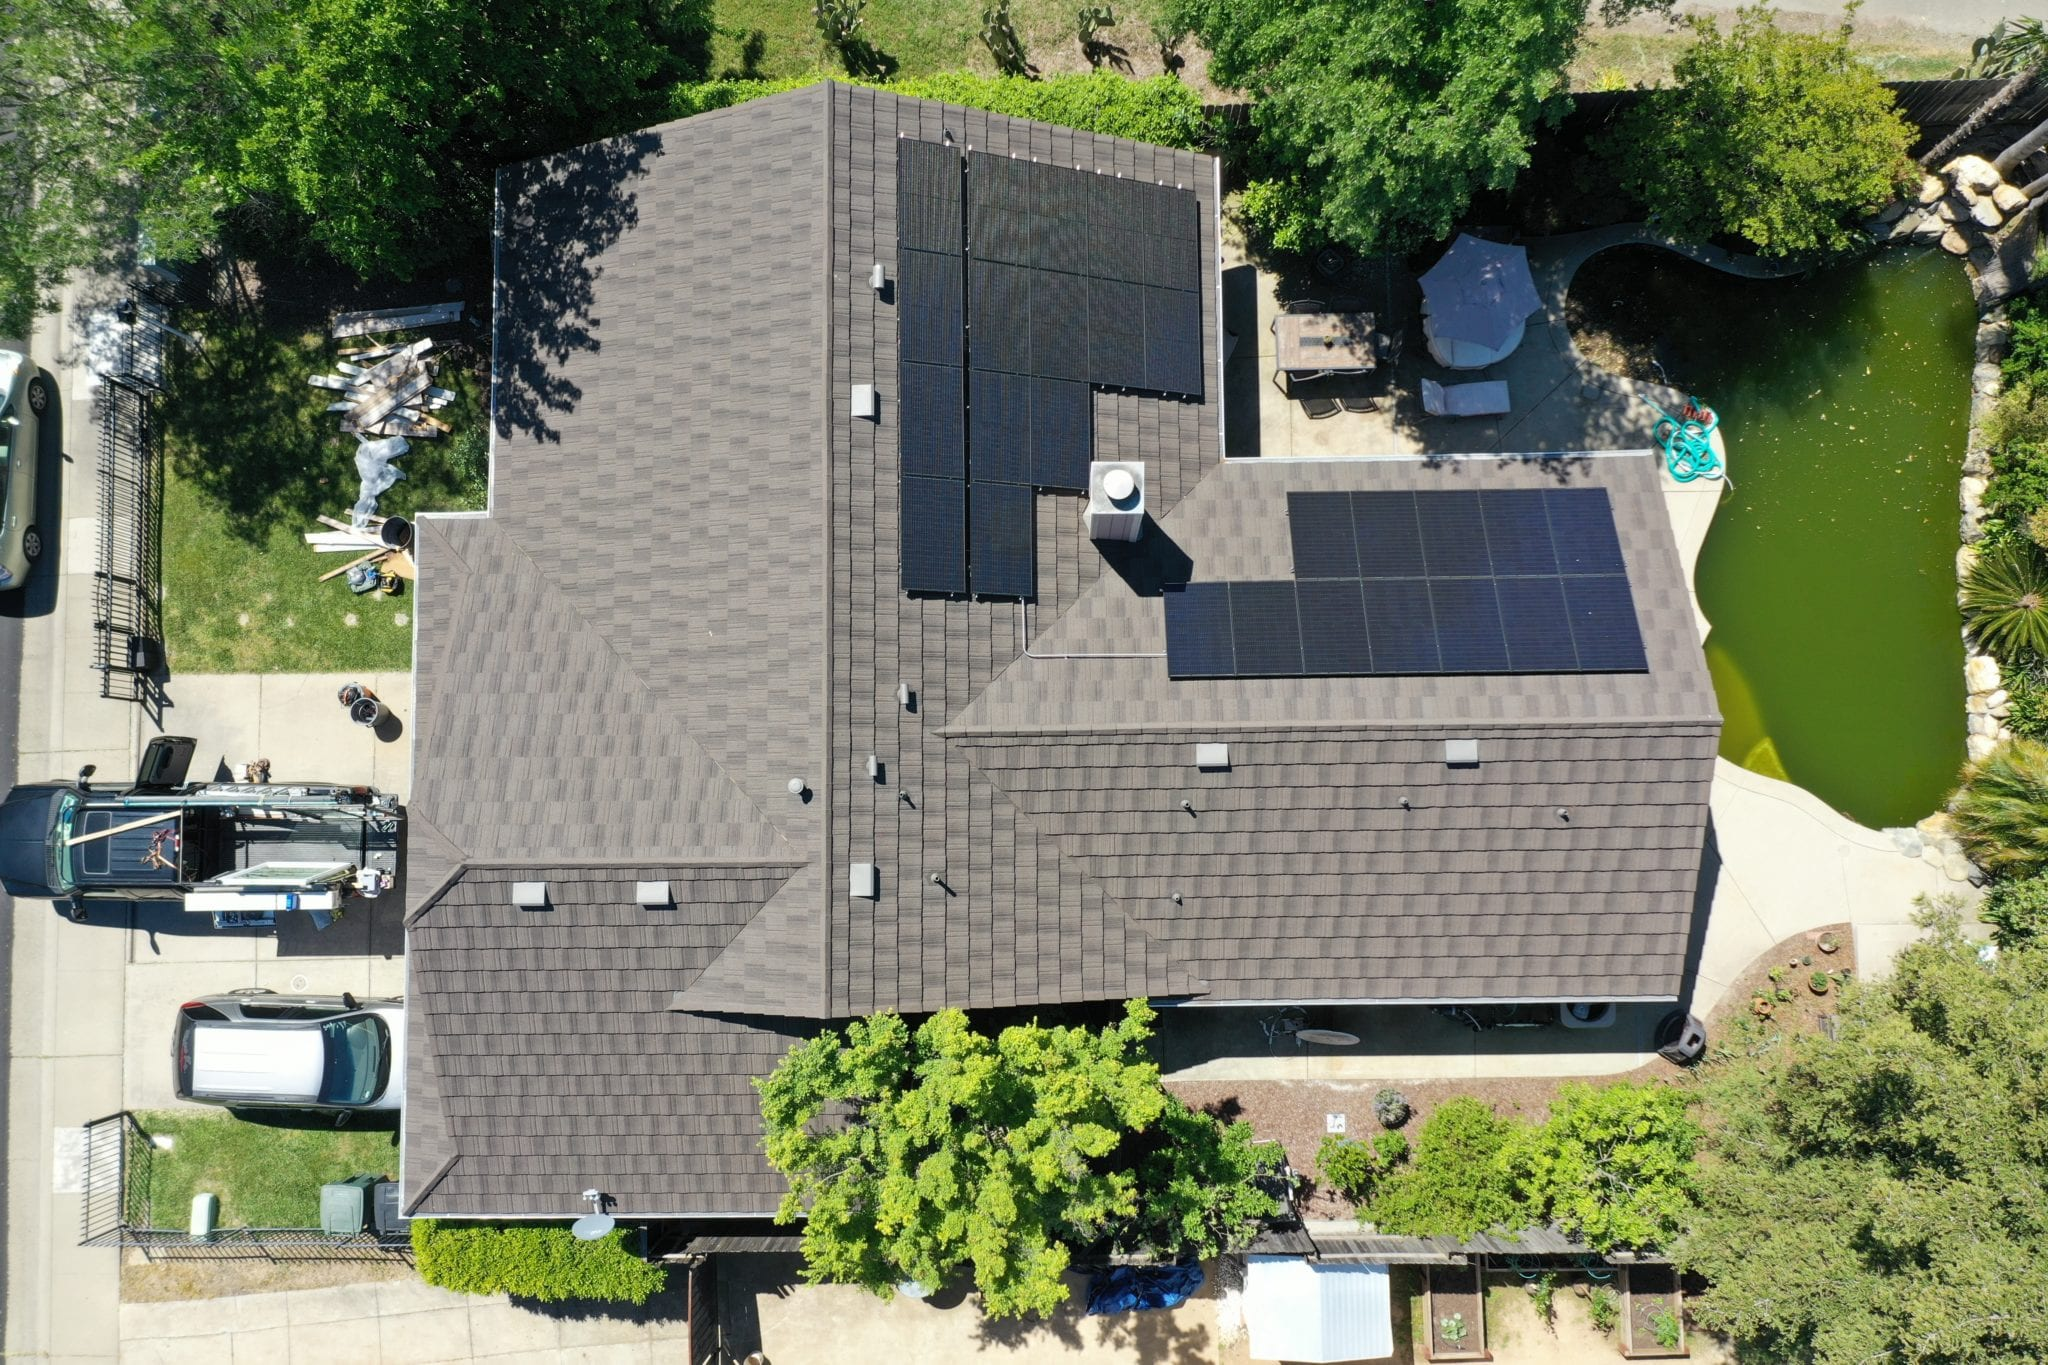 What's the Expiry Date on Your Roof? Change it Before it's Past Due. Here's Why!